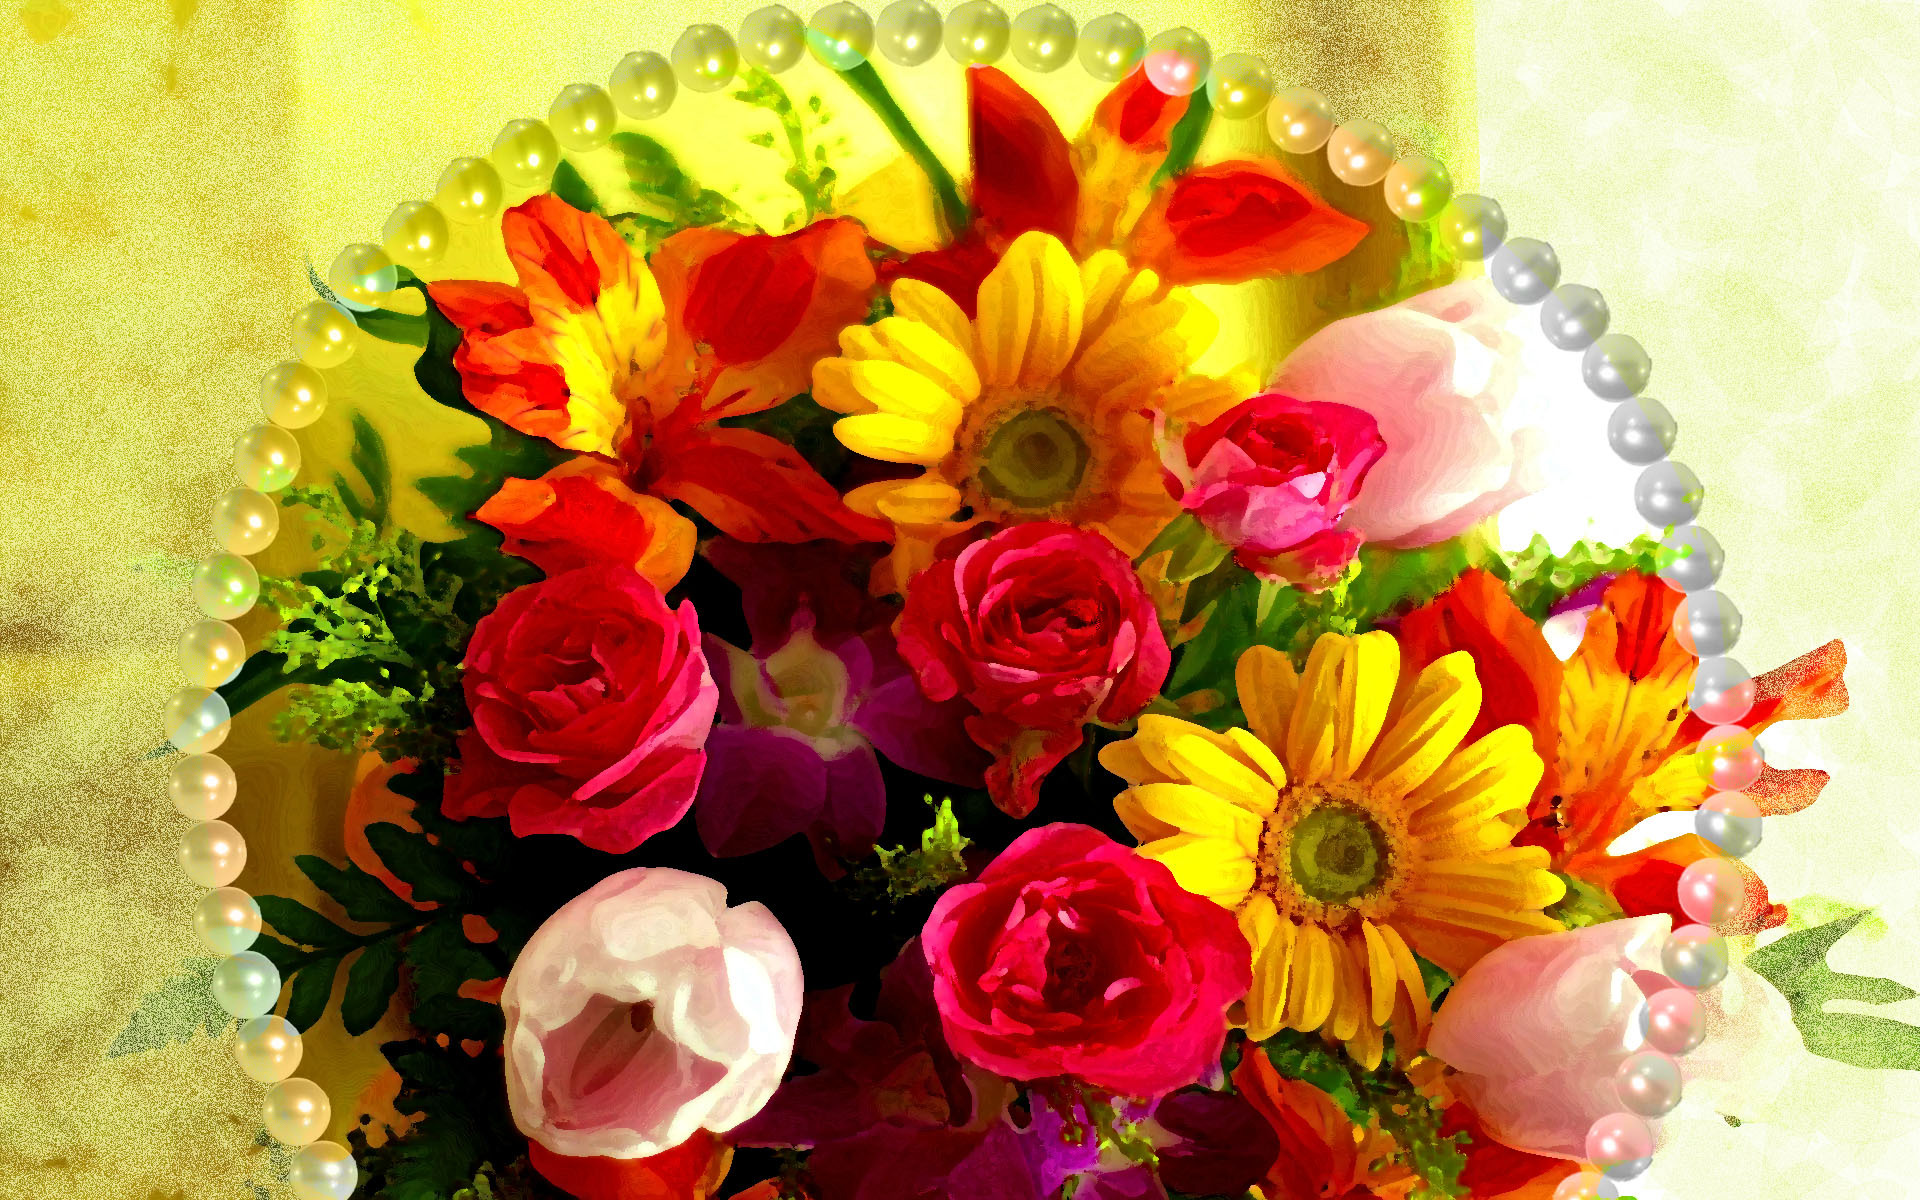 Beautiful flowers most beautiful flowers beautiful flowers images beautiful flowers most beautiful flowers beautiful flowers images beautiful flower bouquet beautiful beautiful flowers wallpapers garden images pictures in izmirmasajfo